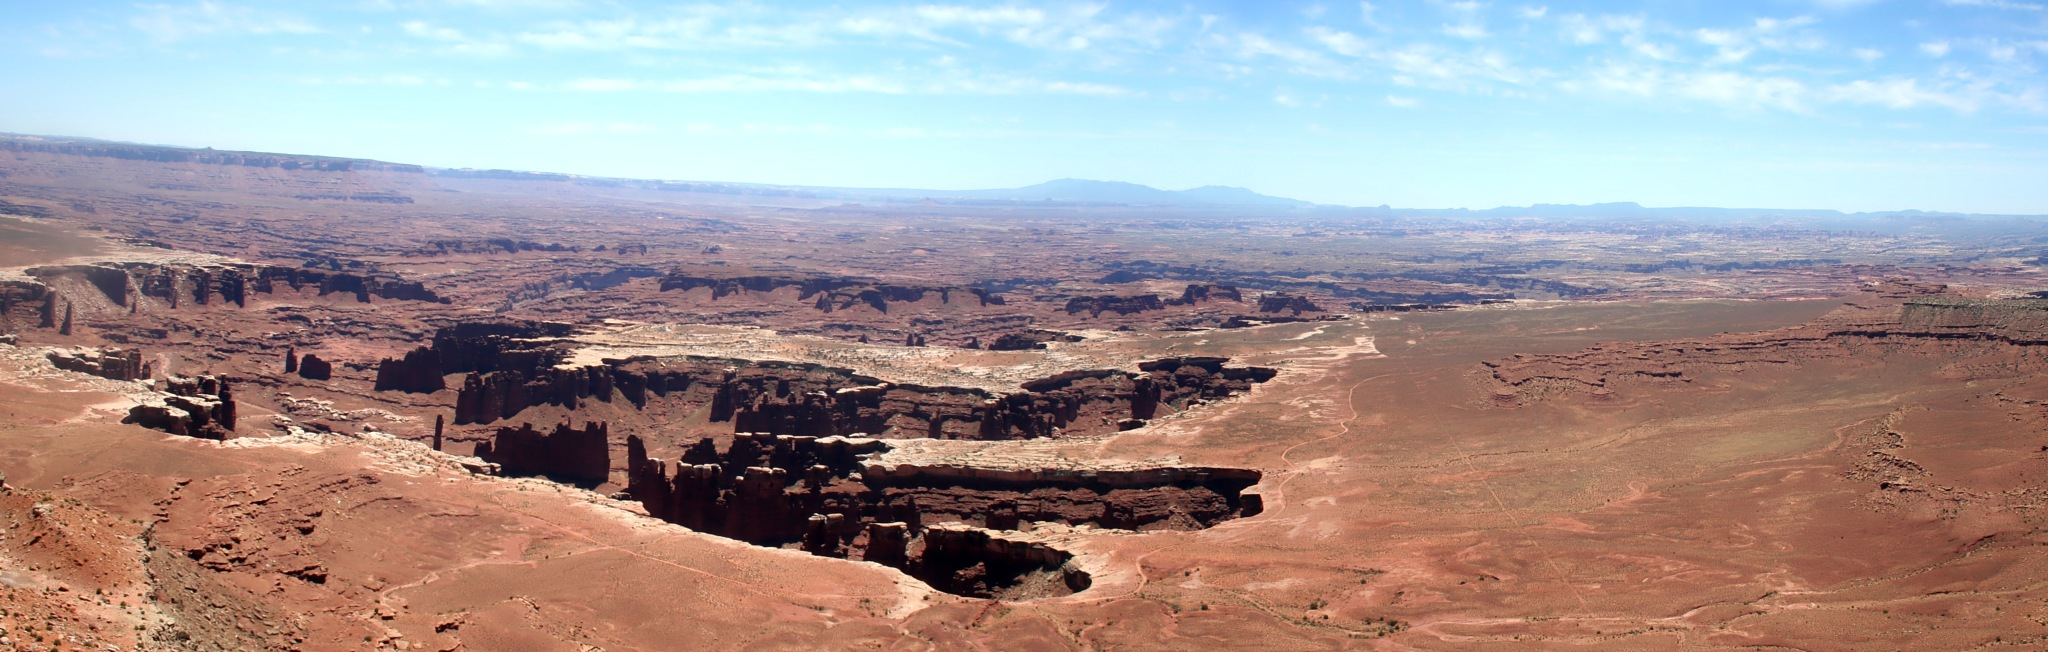 Canyonlands , island in the sky by katze